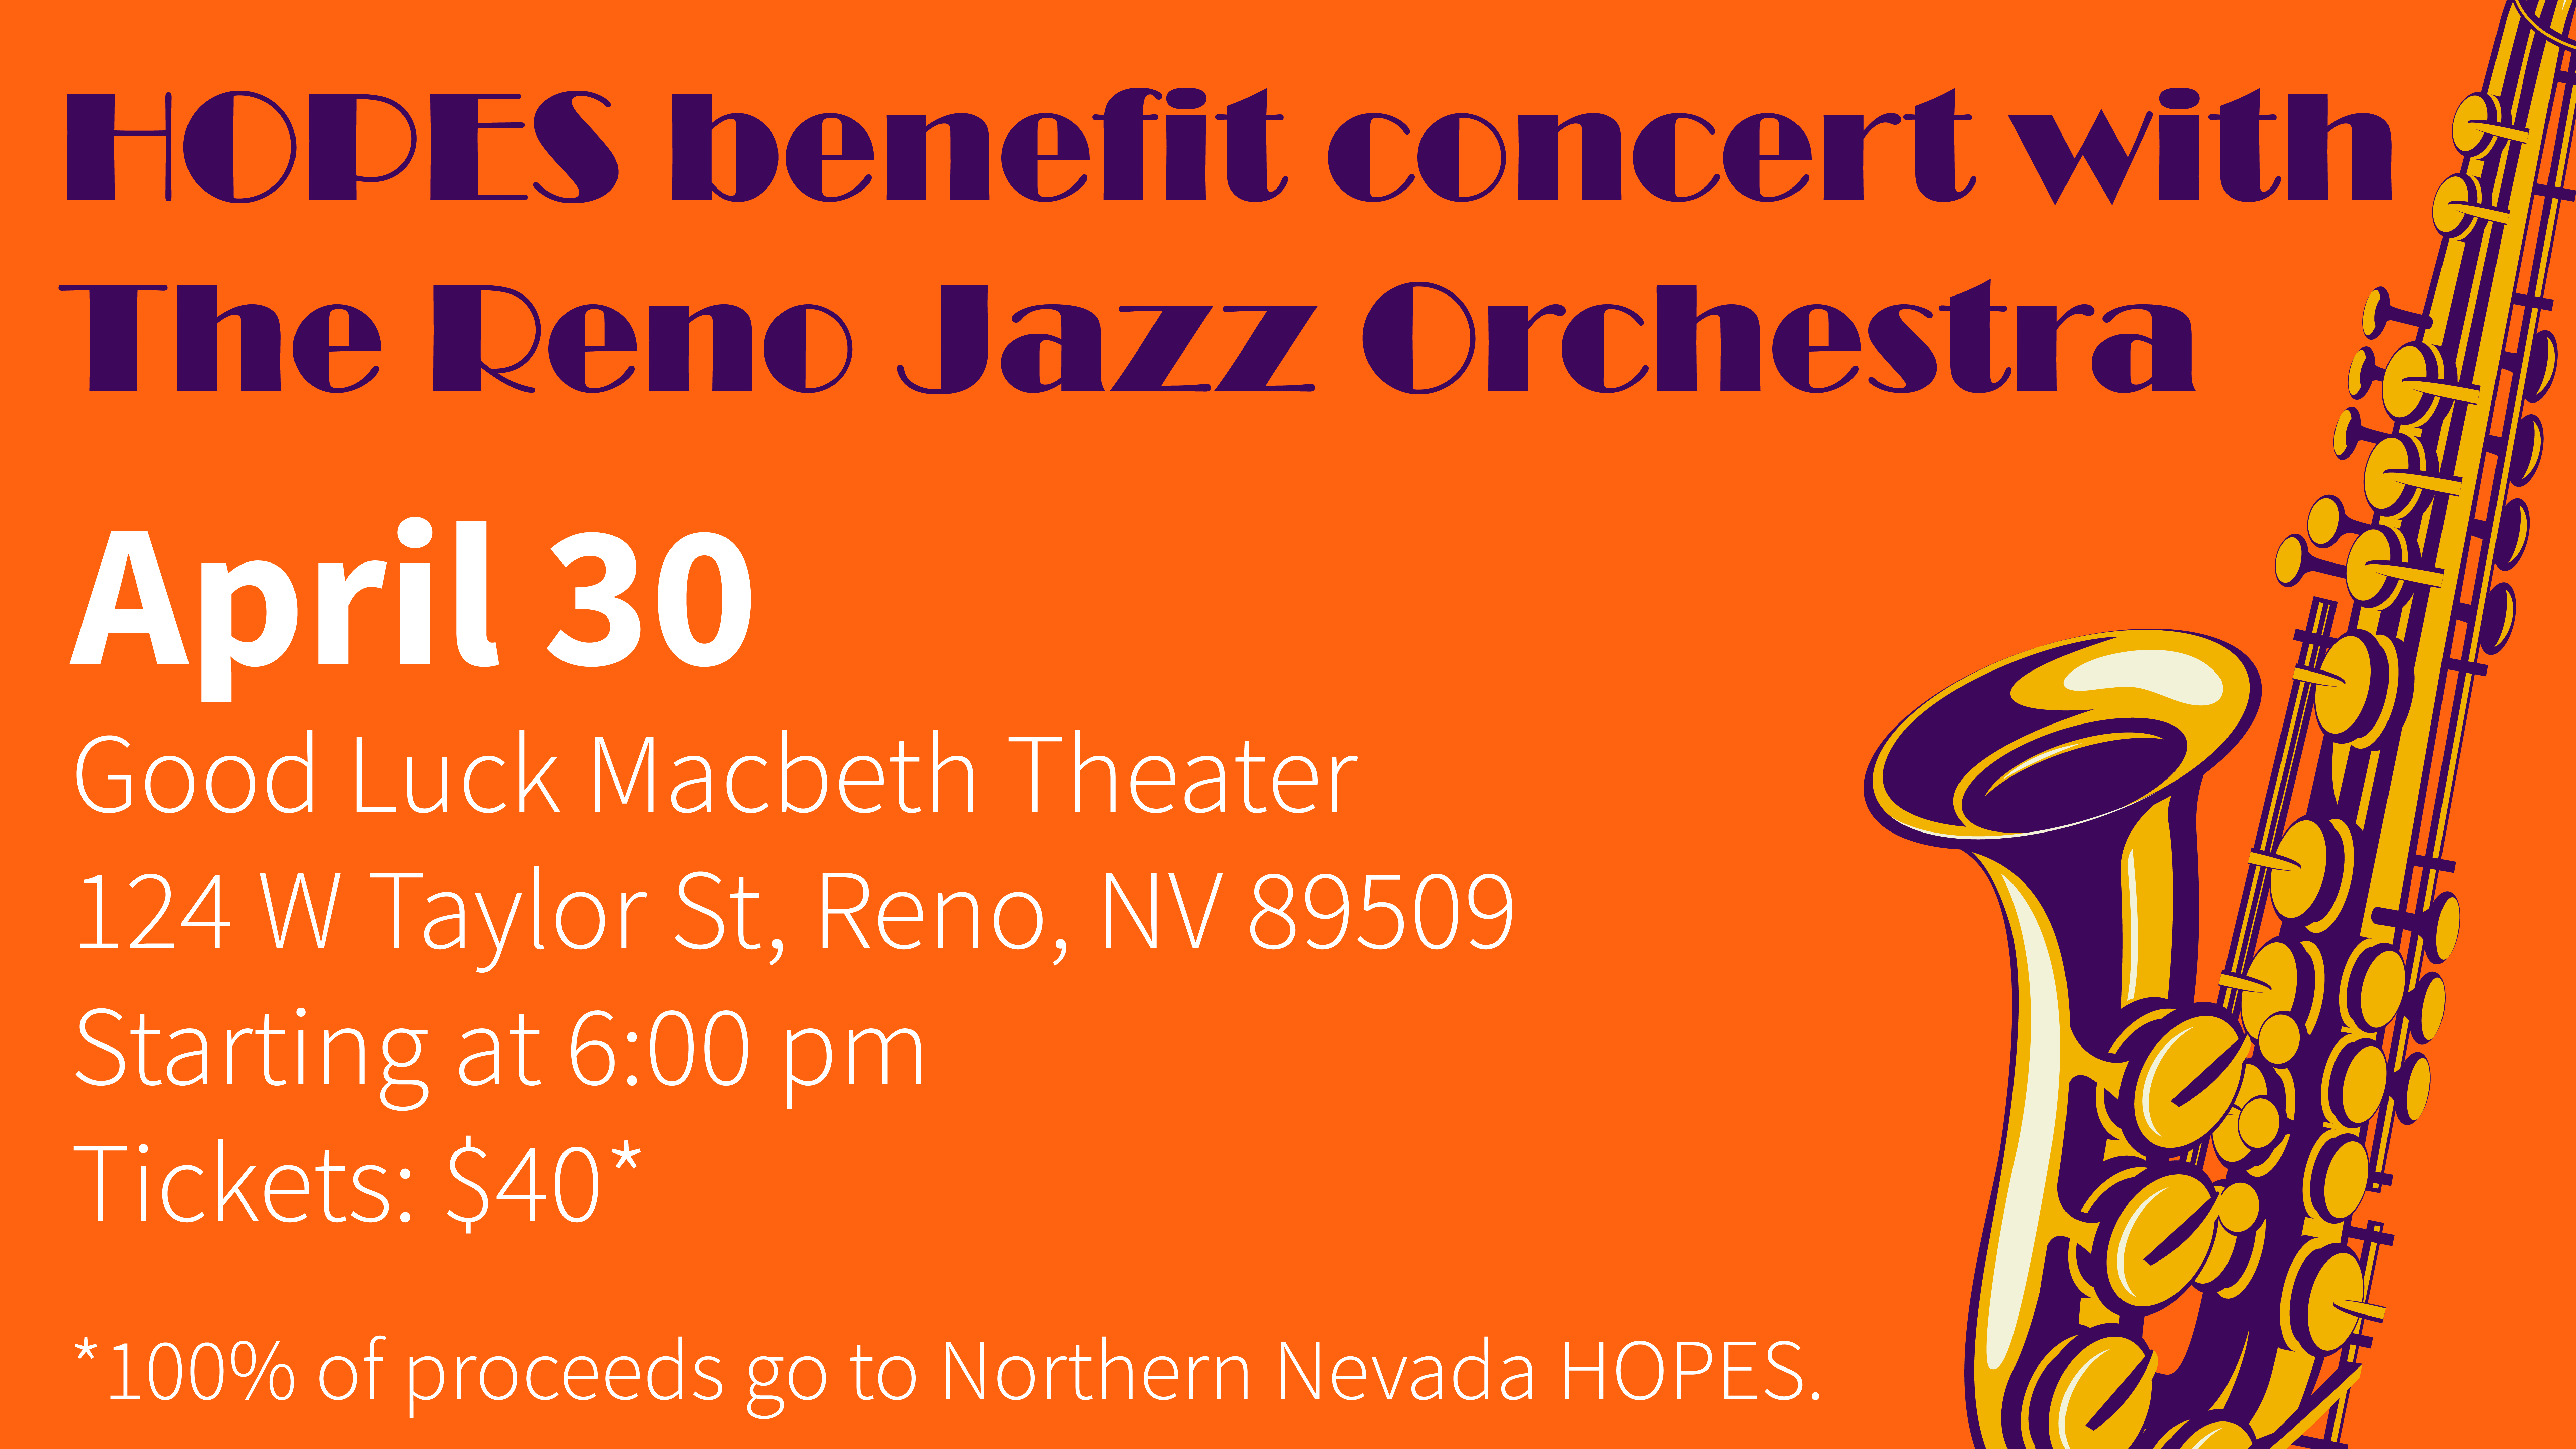 HOPES Benefit Concert with Reno Jazz Orchestra on April 30